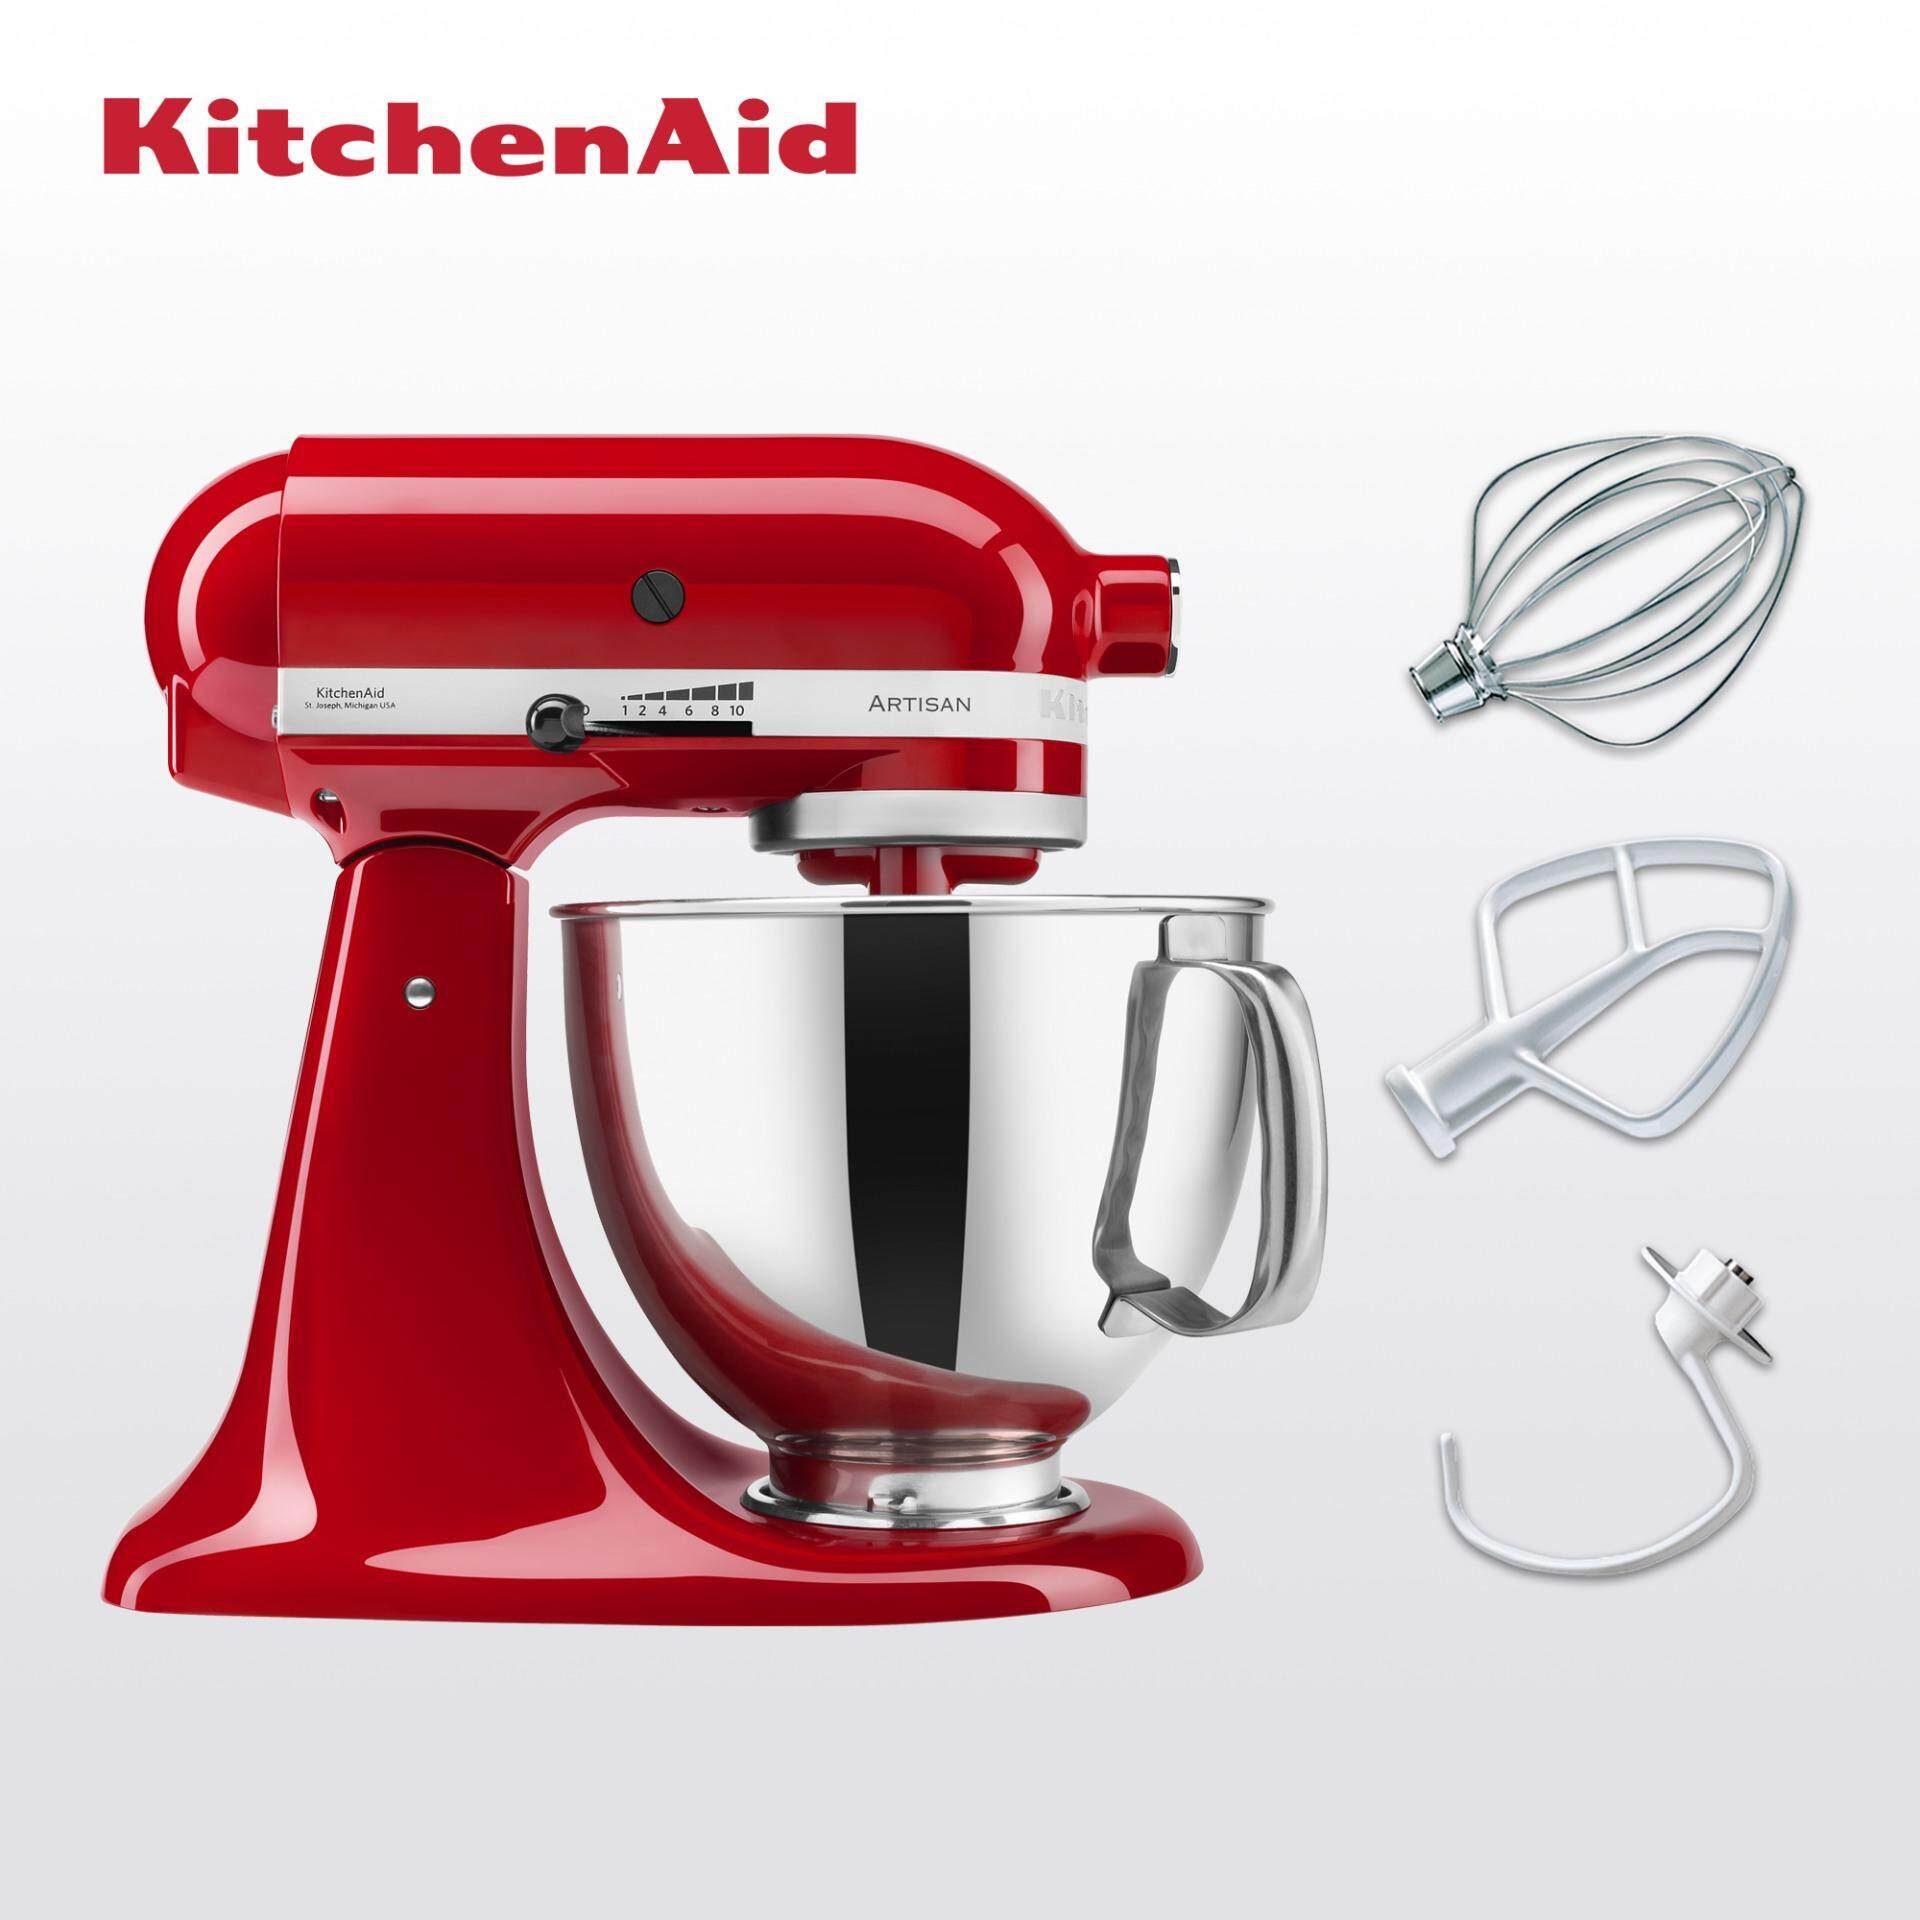 Kitchenaid Mixers For The Best Price In Malaysia